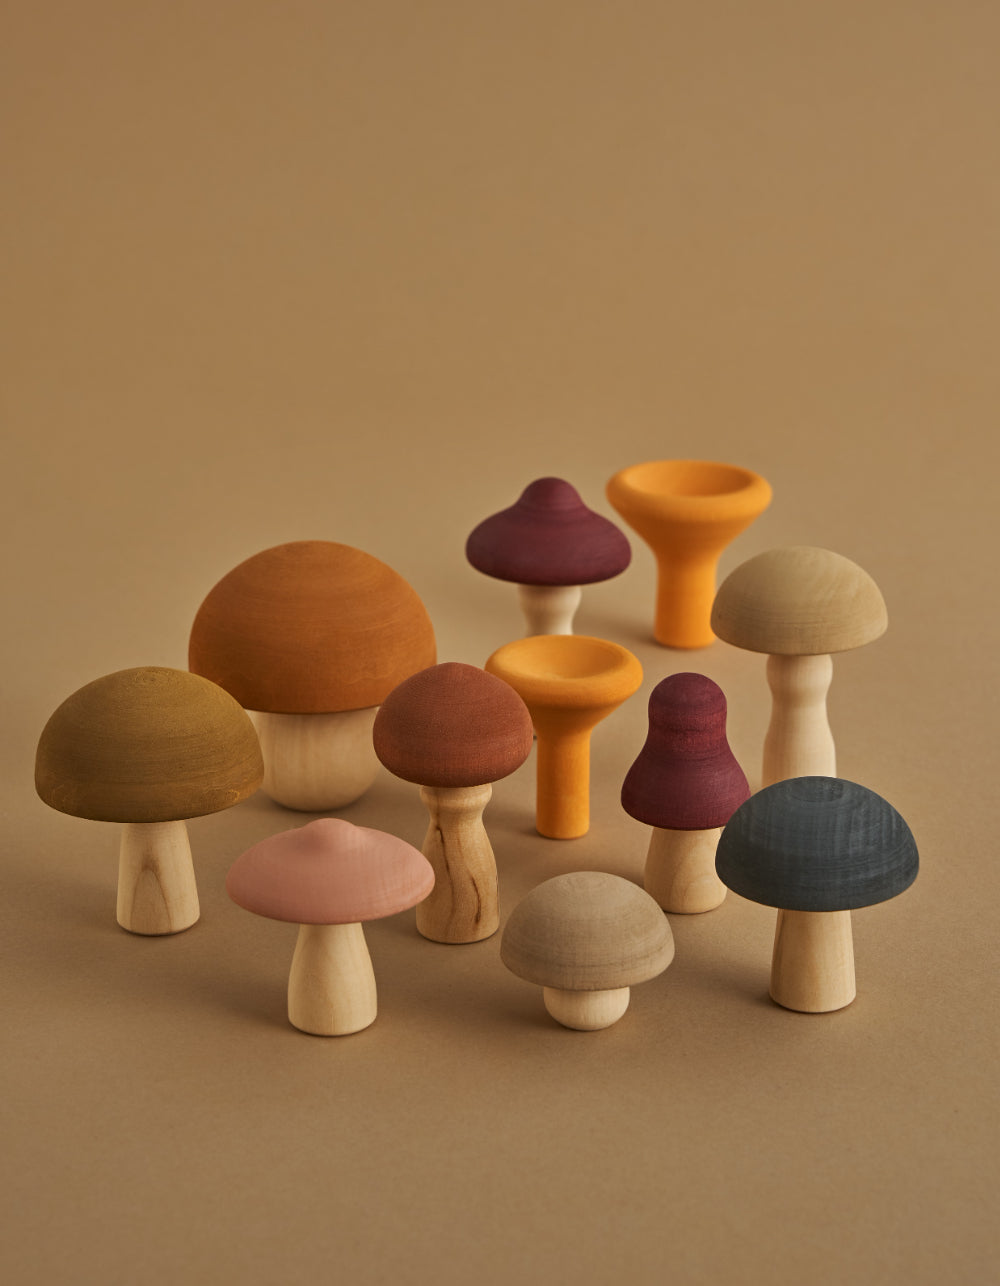 raduga grez wooden toys mushrooms